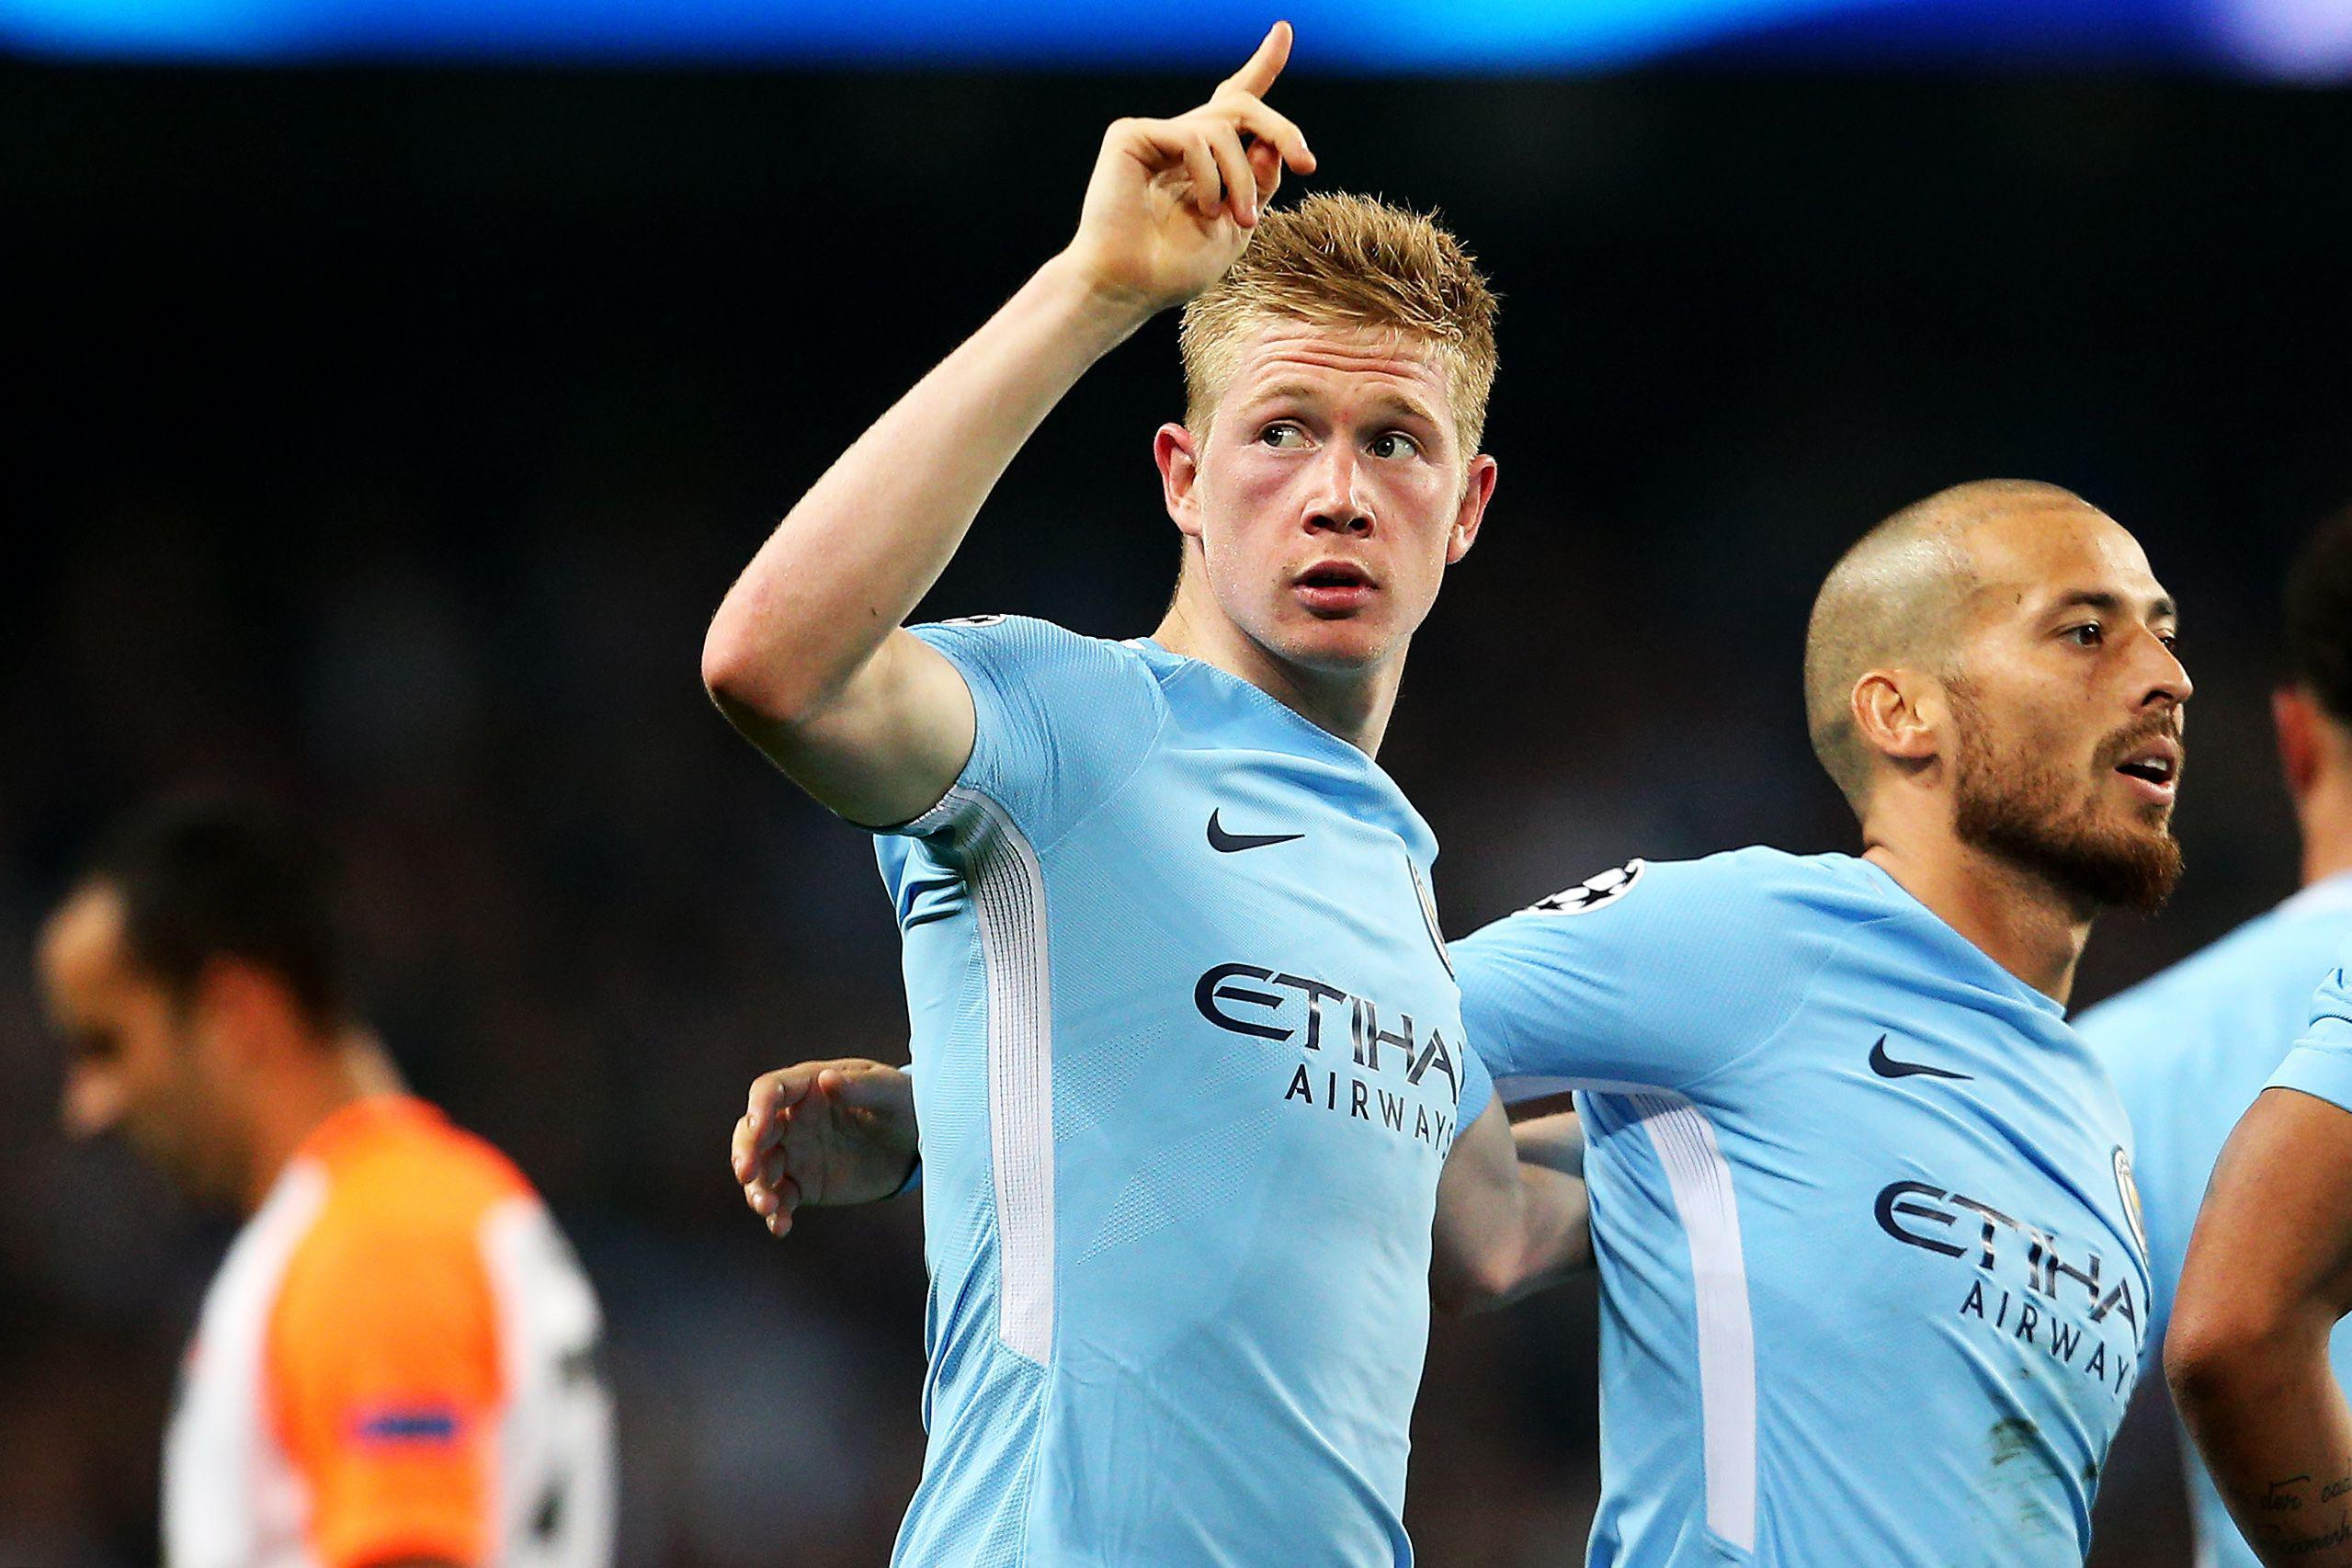 Manchester City ace Kevin De Bruyne has been in inspired form for the Citizens this season